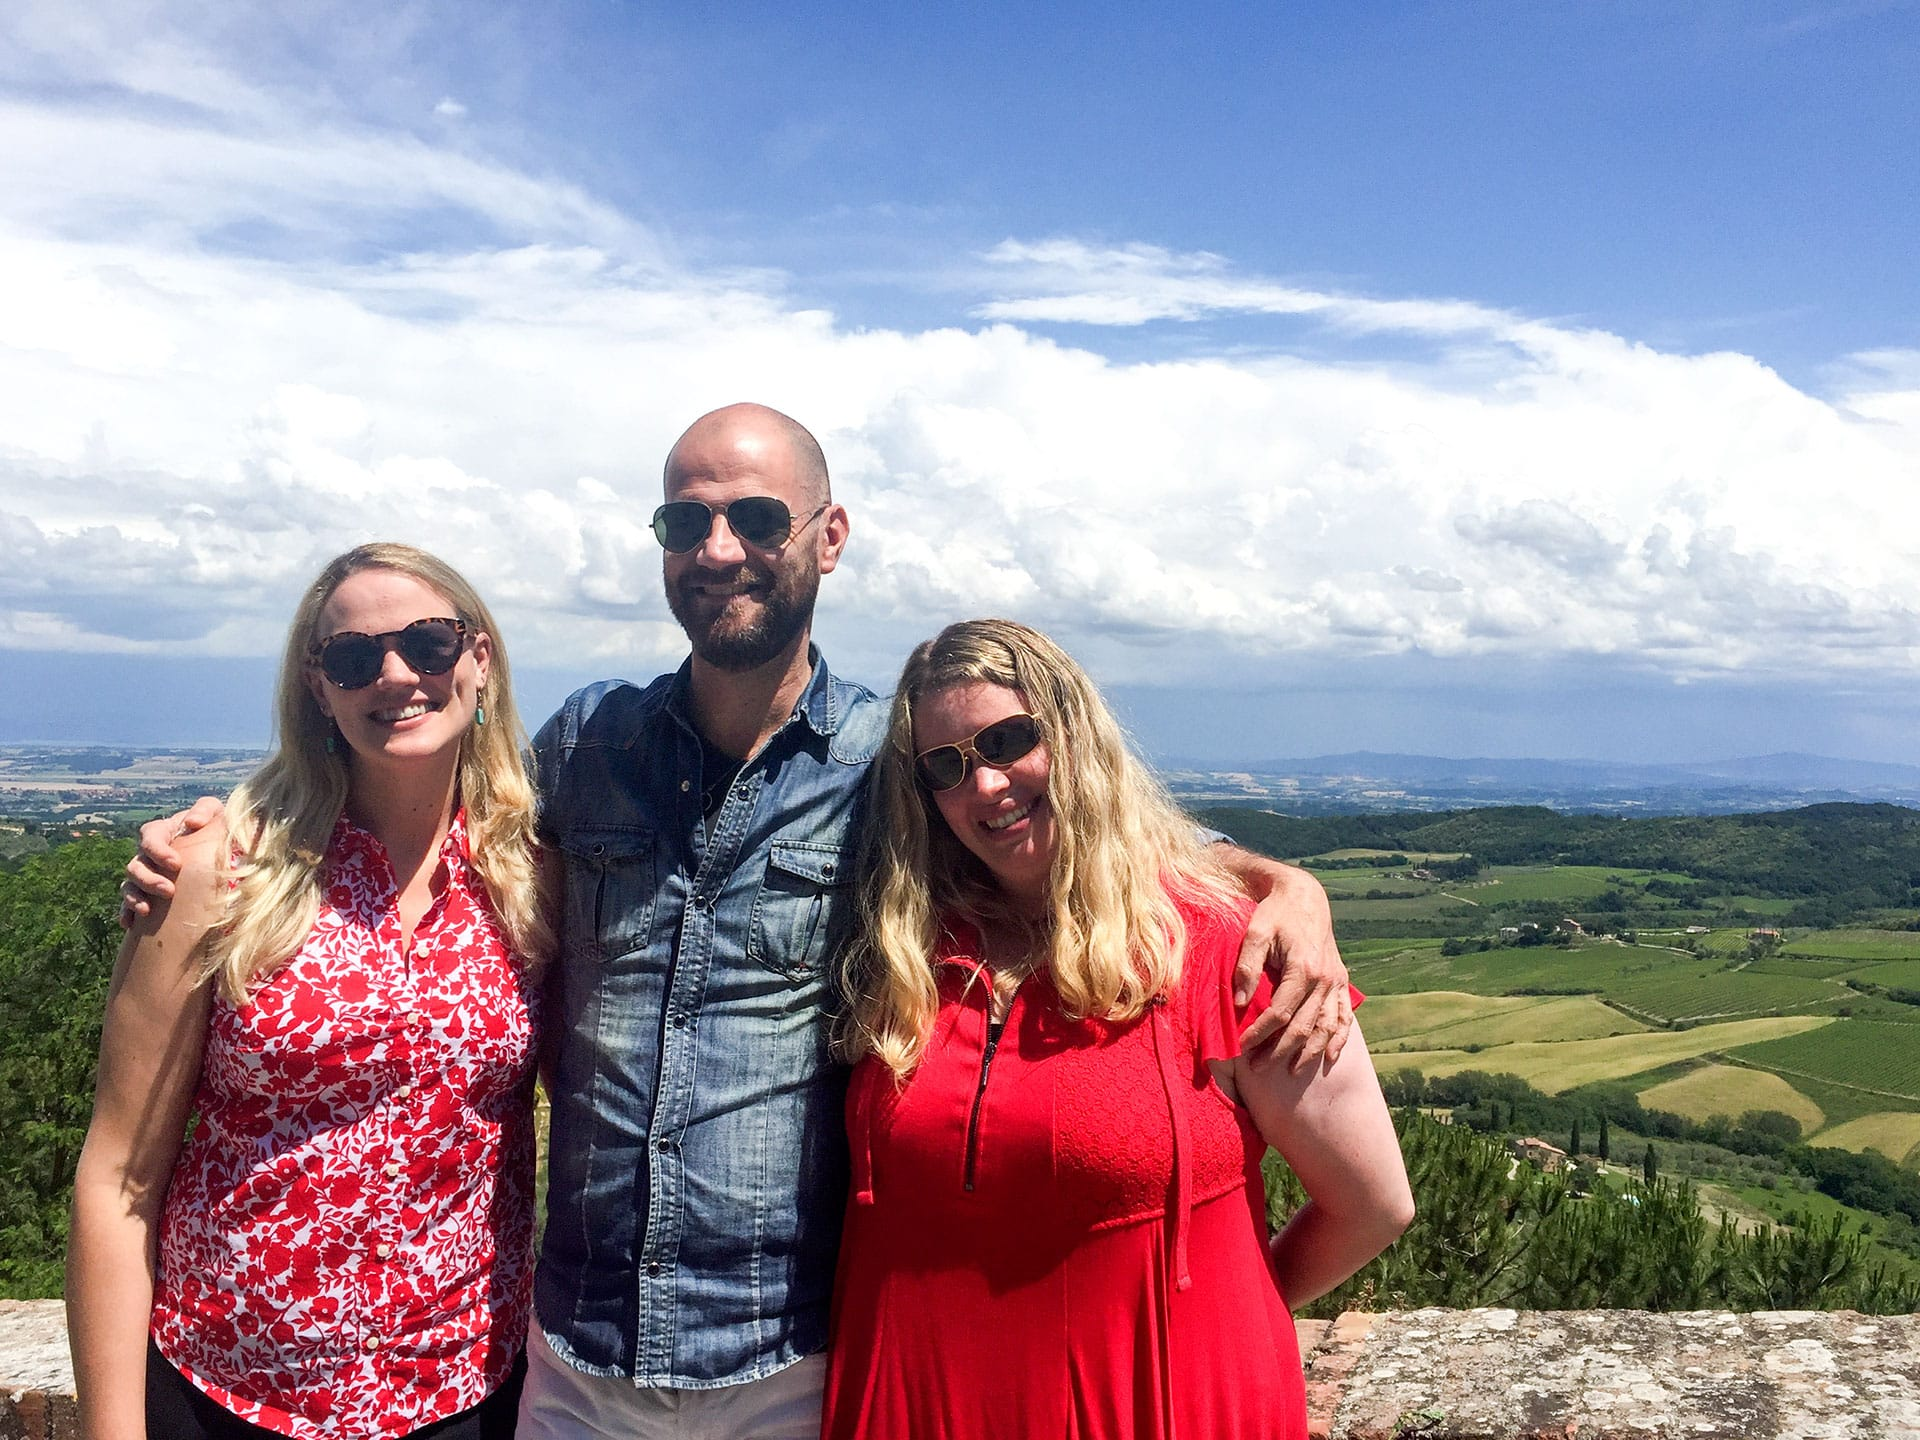 Cortona wine tour photos and images | Pictures of wine and truffle tours in Tuscany and Umbria